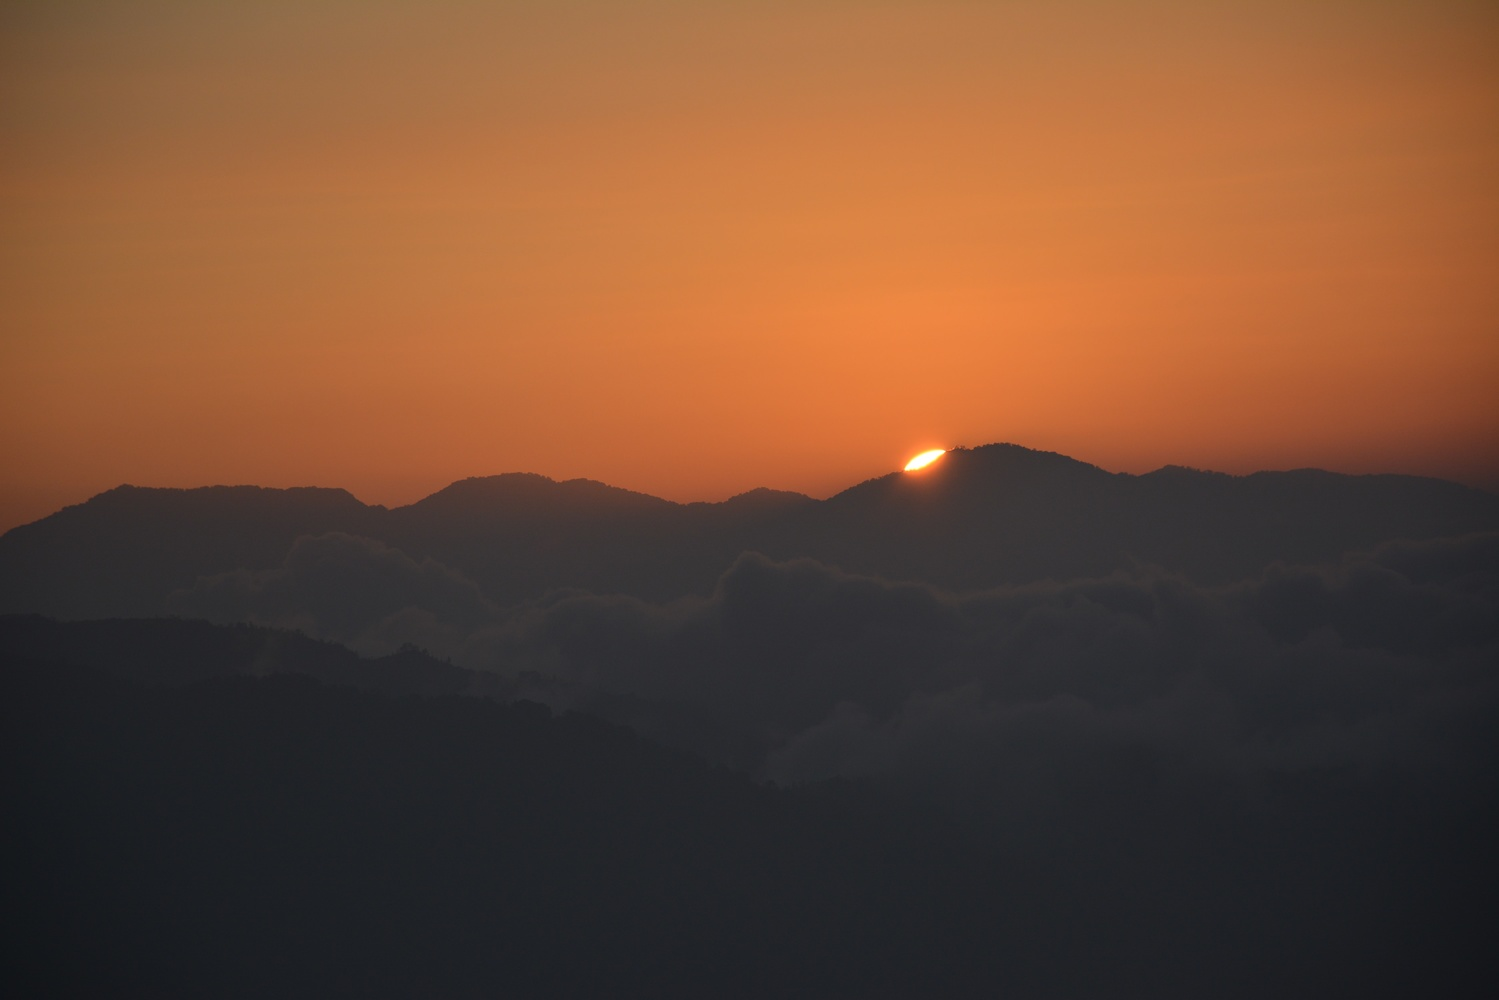 Beautiful Sunset Over Mountains by Ritesh Dixit